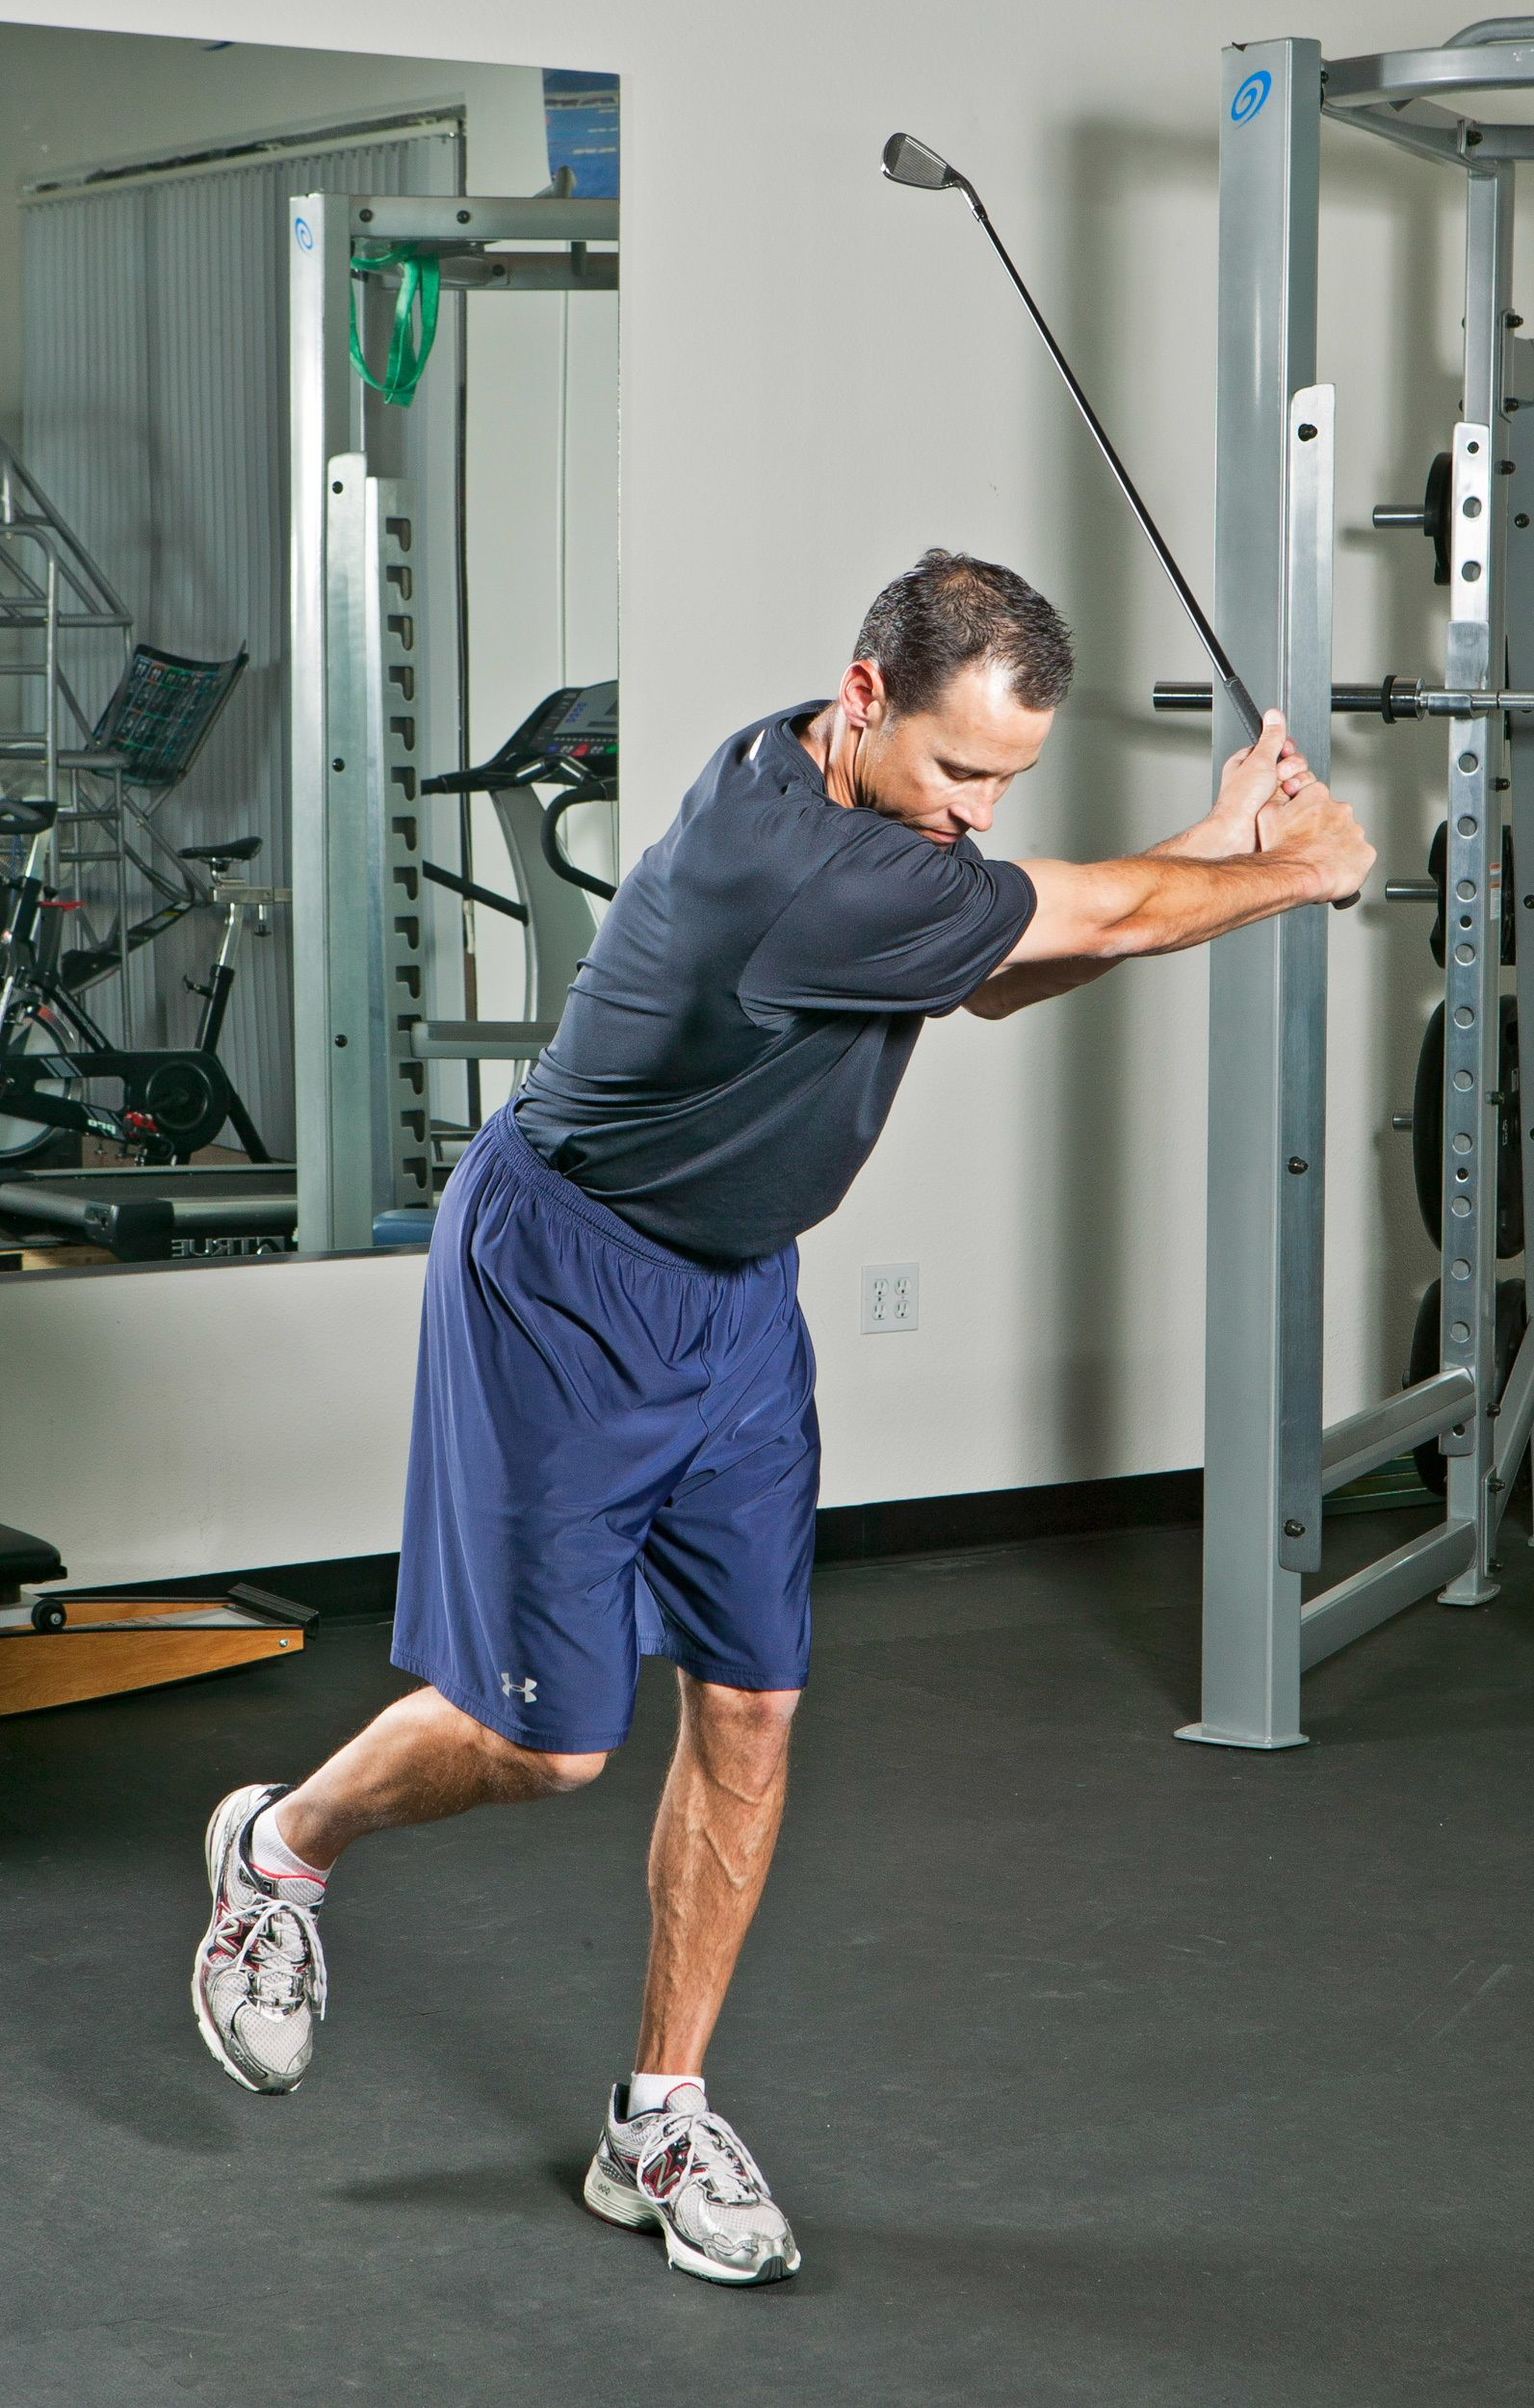 Single Leg Club Swings Golf Fitness Exercise Balance Is